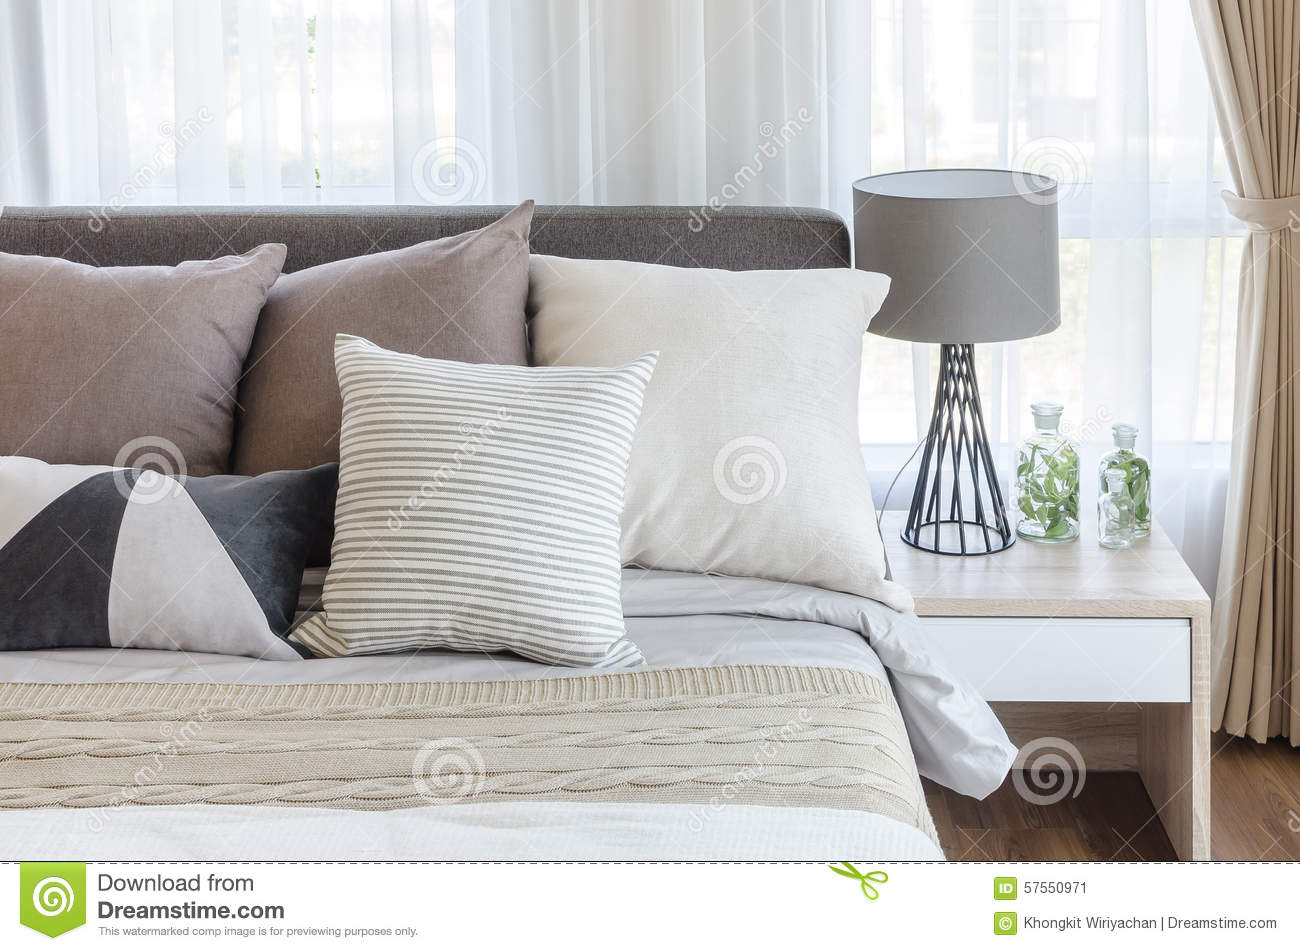 Modern Family Pillows On Bed : Modern Style Bedroom With Pillows On Bed And Modern Grey Lamp On Stock Photo - Image: 57550971